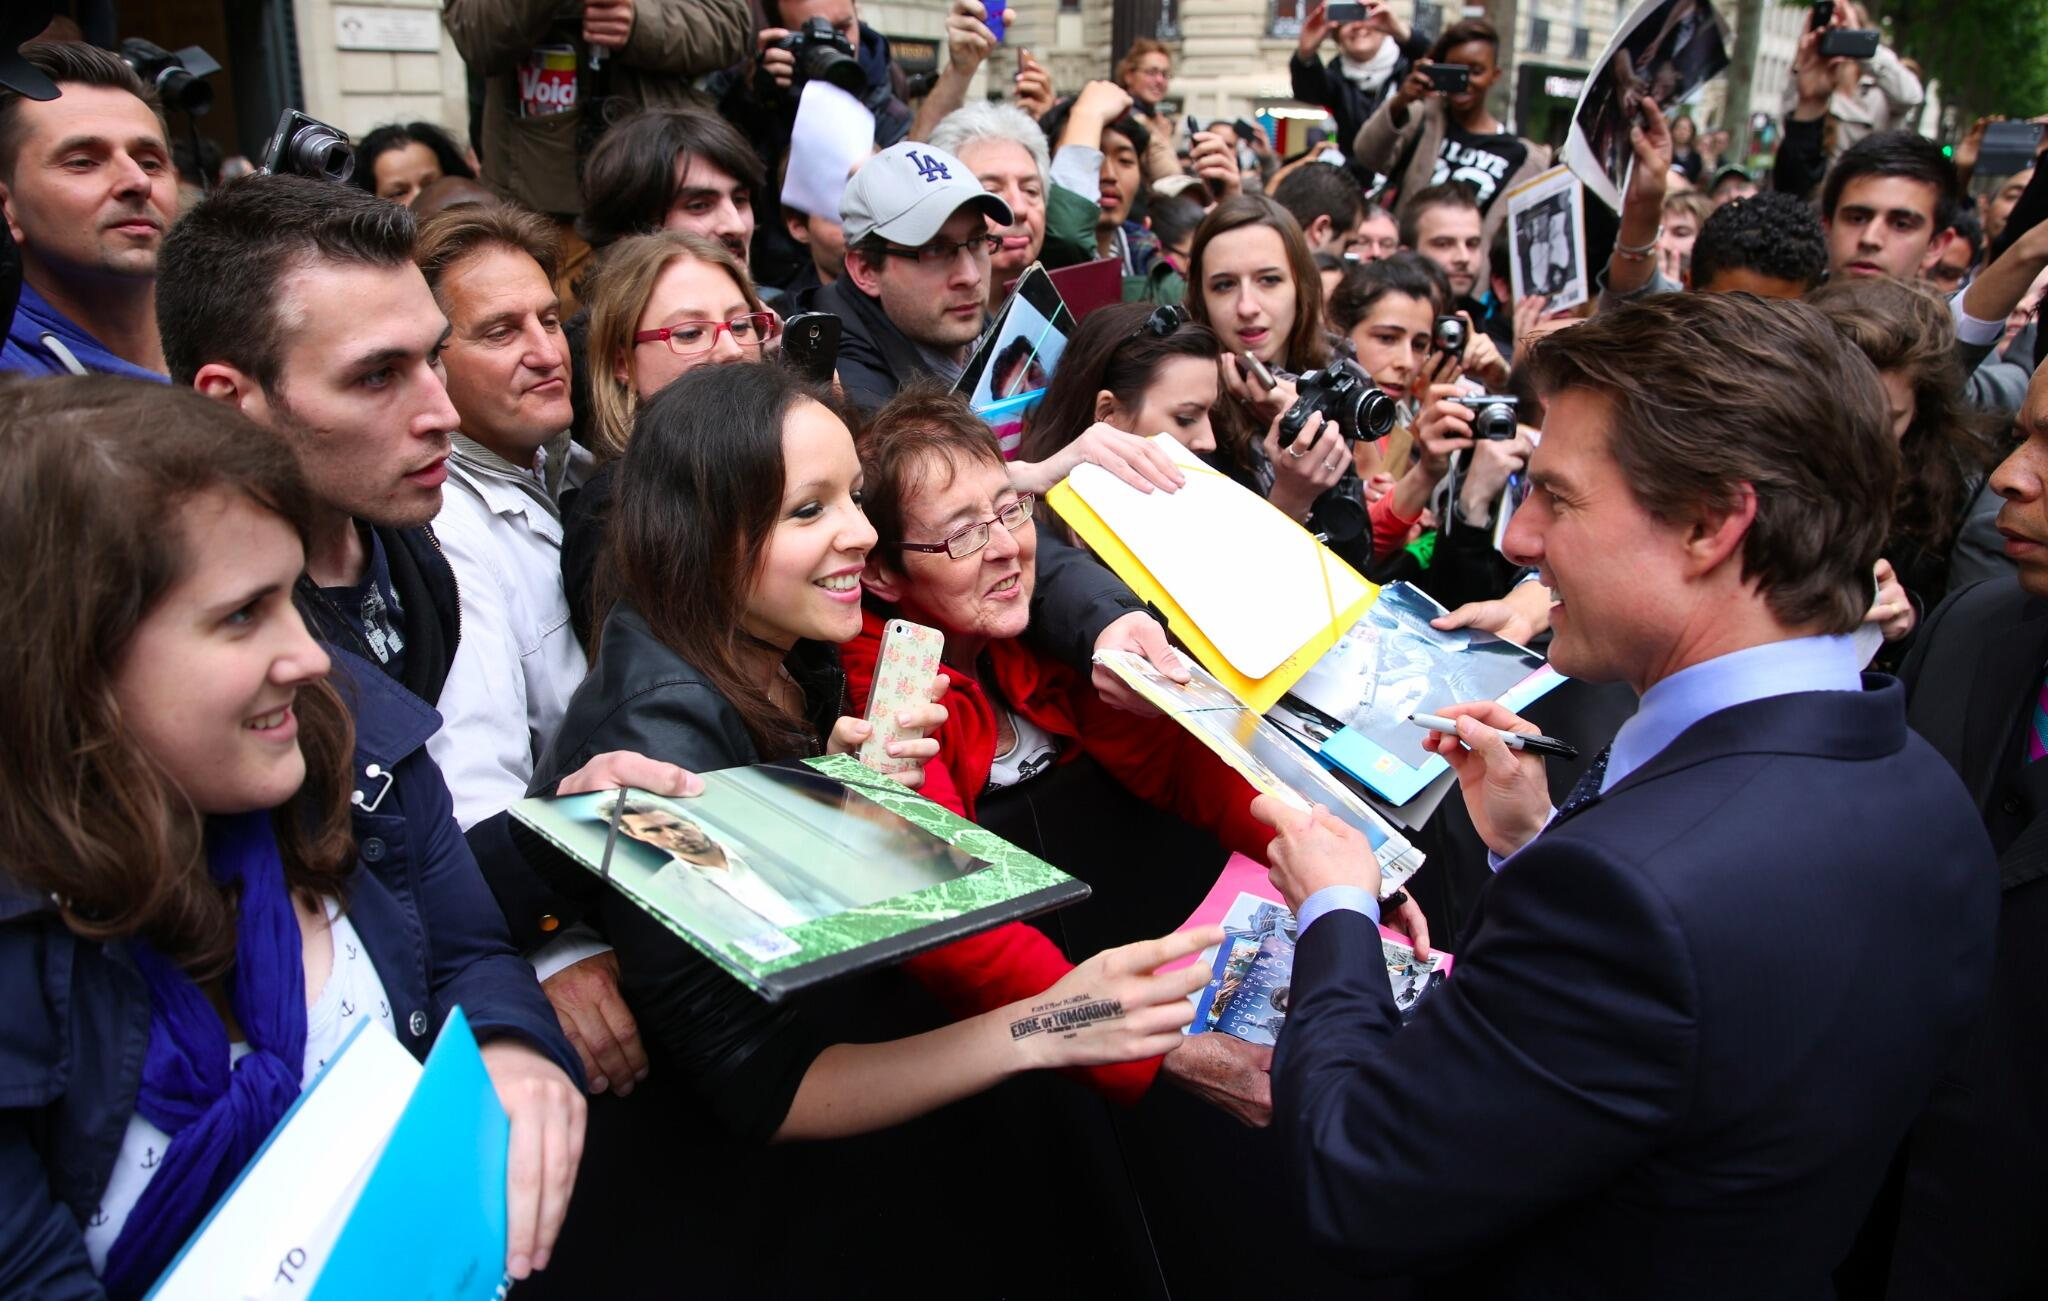 Twitter / TomCruise: Meeting fans on the Champs ...